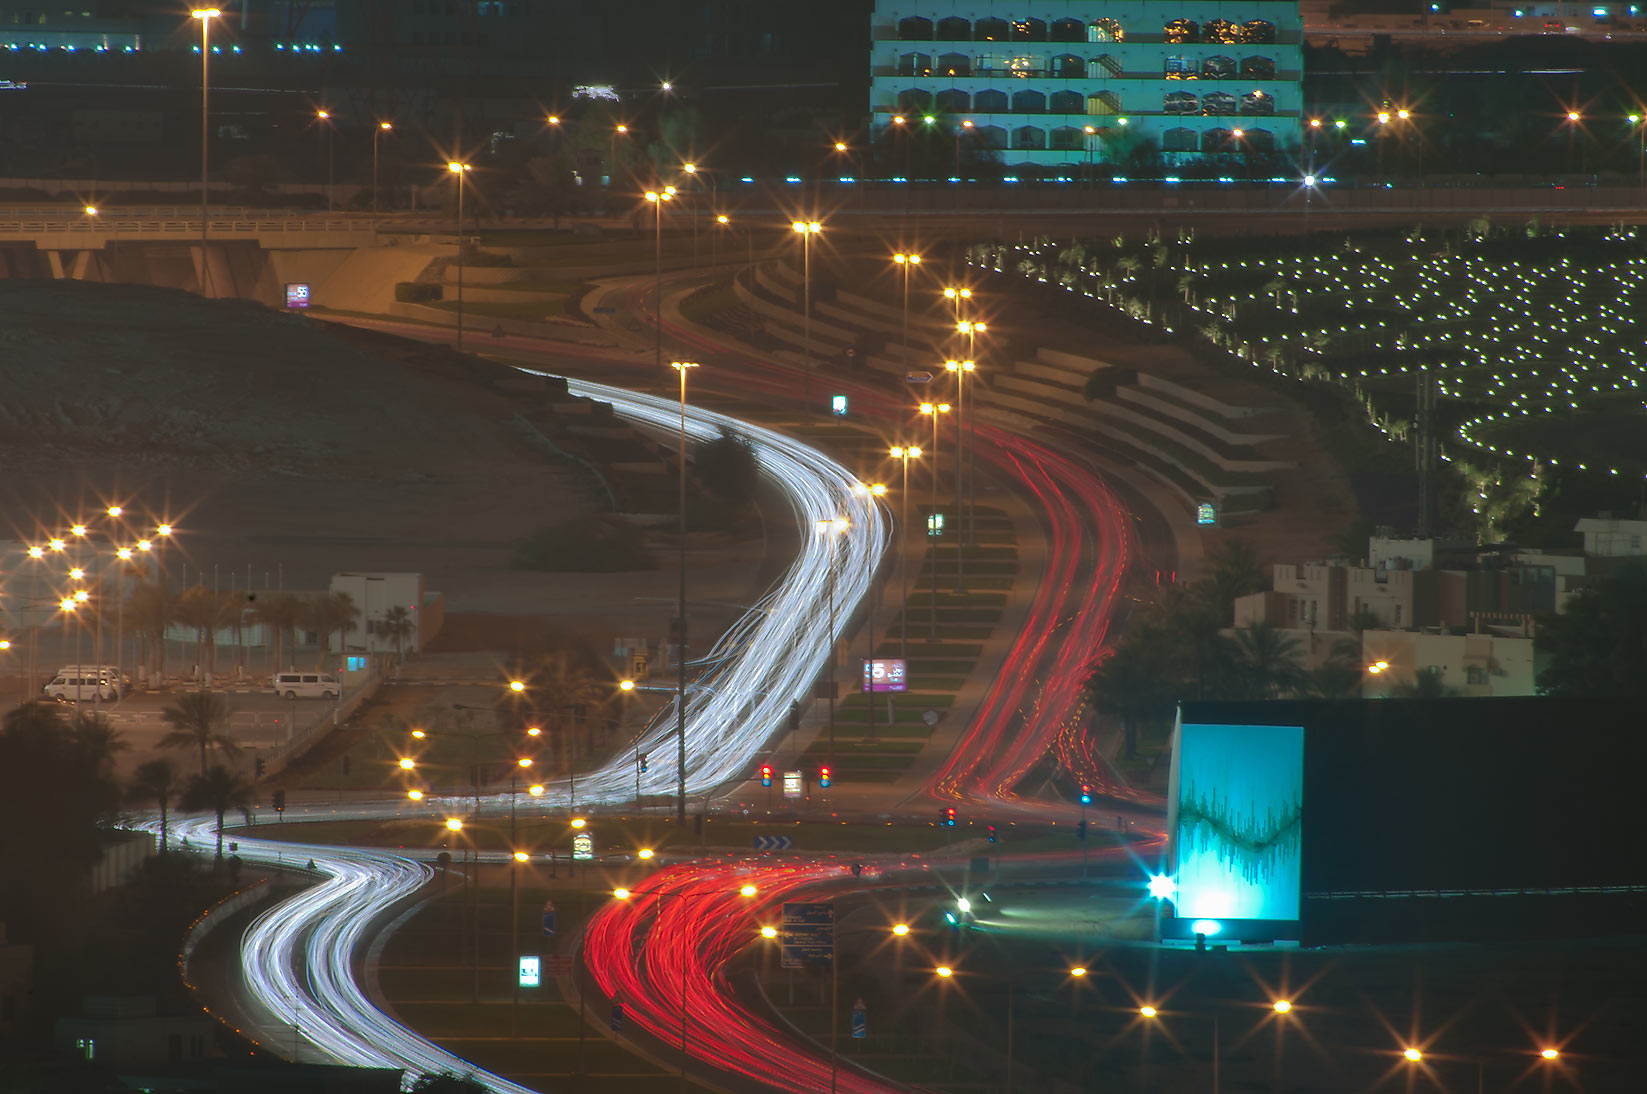 Al Istiqlal St. and Independence Roundabout at...2303 of ASAS Tower West. Doha, Qatar